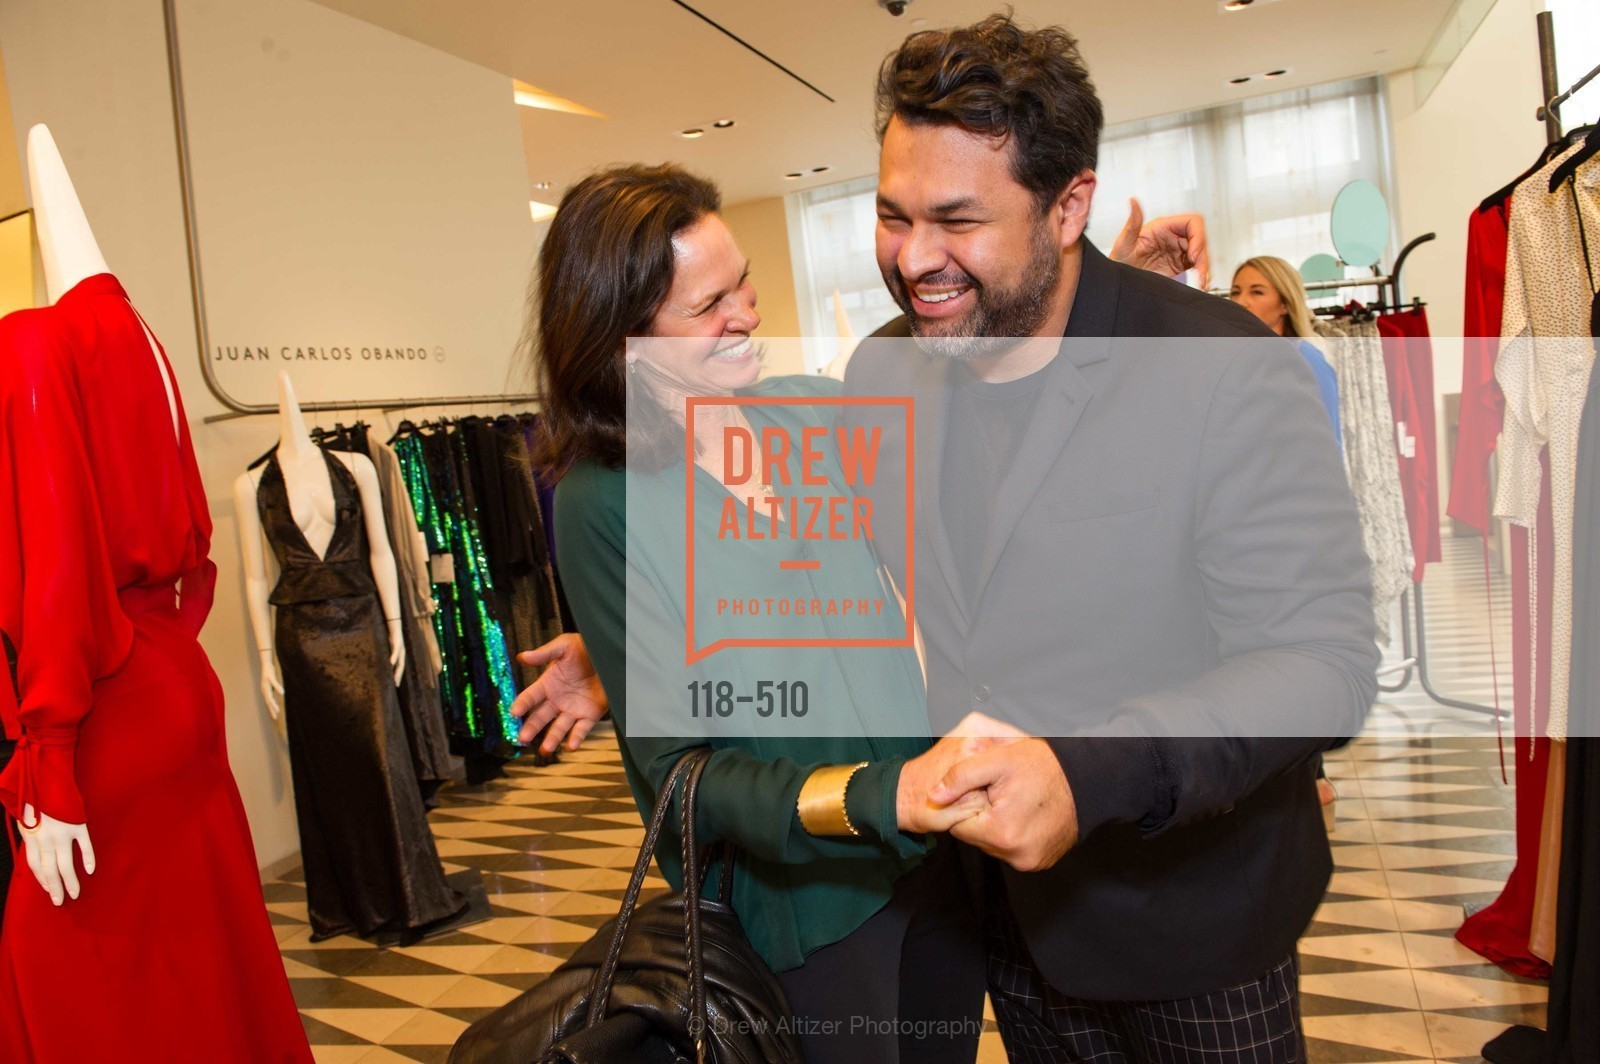 Randi Fisher, JC Obando, BARNEY'S NEW YORK, Irene Neuwirth, JC Obando, Troy Surratt and THE TIPPING POINT COMMUNITY Chair Committe Host a Cocktail Party, US. US, April 9th, 2014,Drew Altizer, Drew Altizer Photography, full-service event agency, private events, San Francisco photographer, photographer California